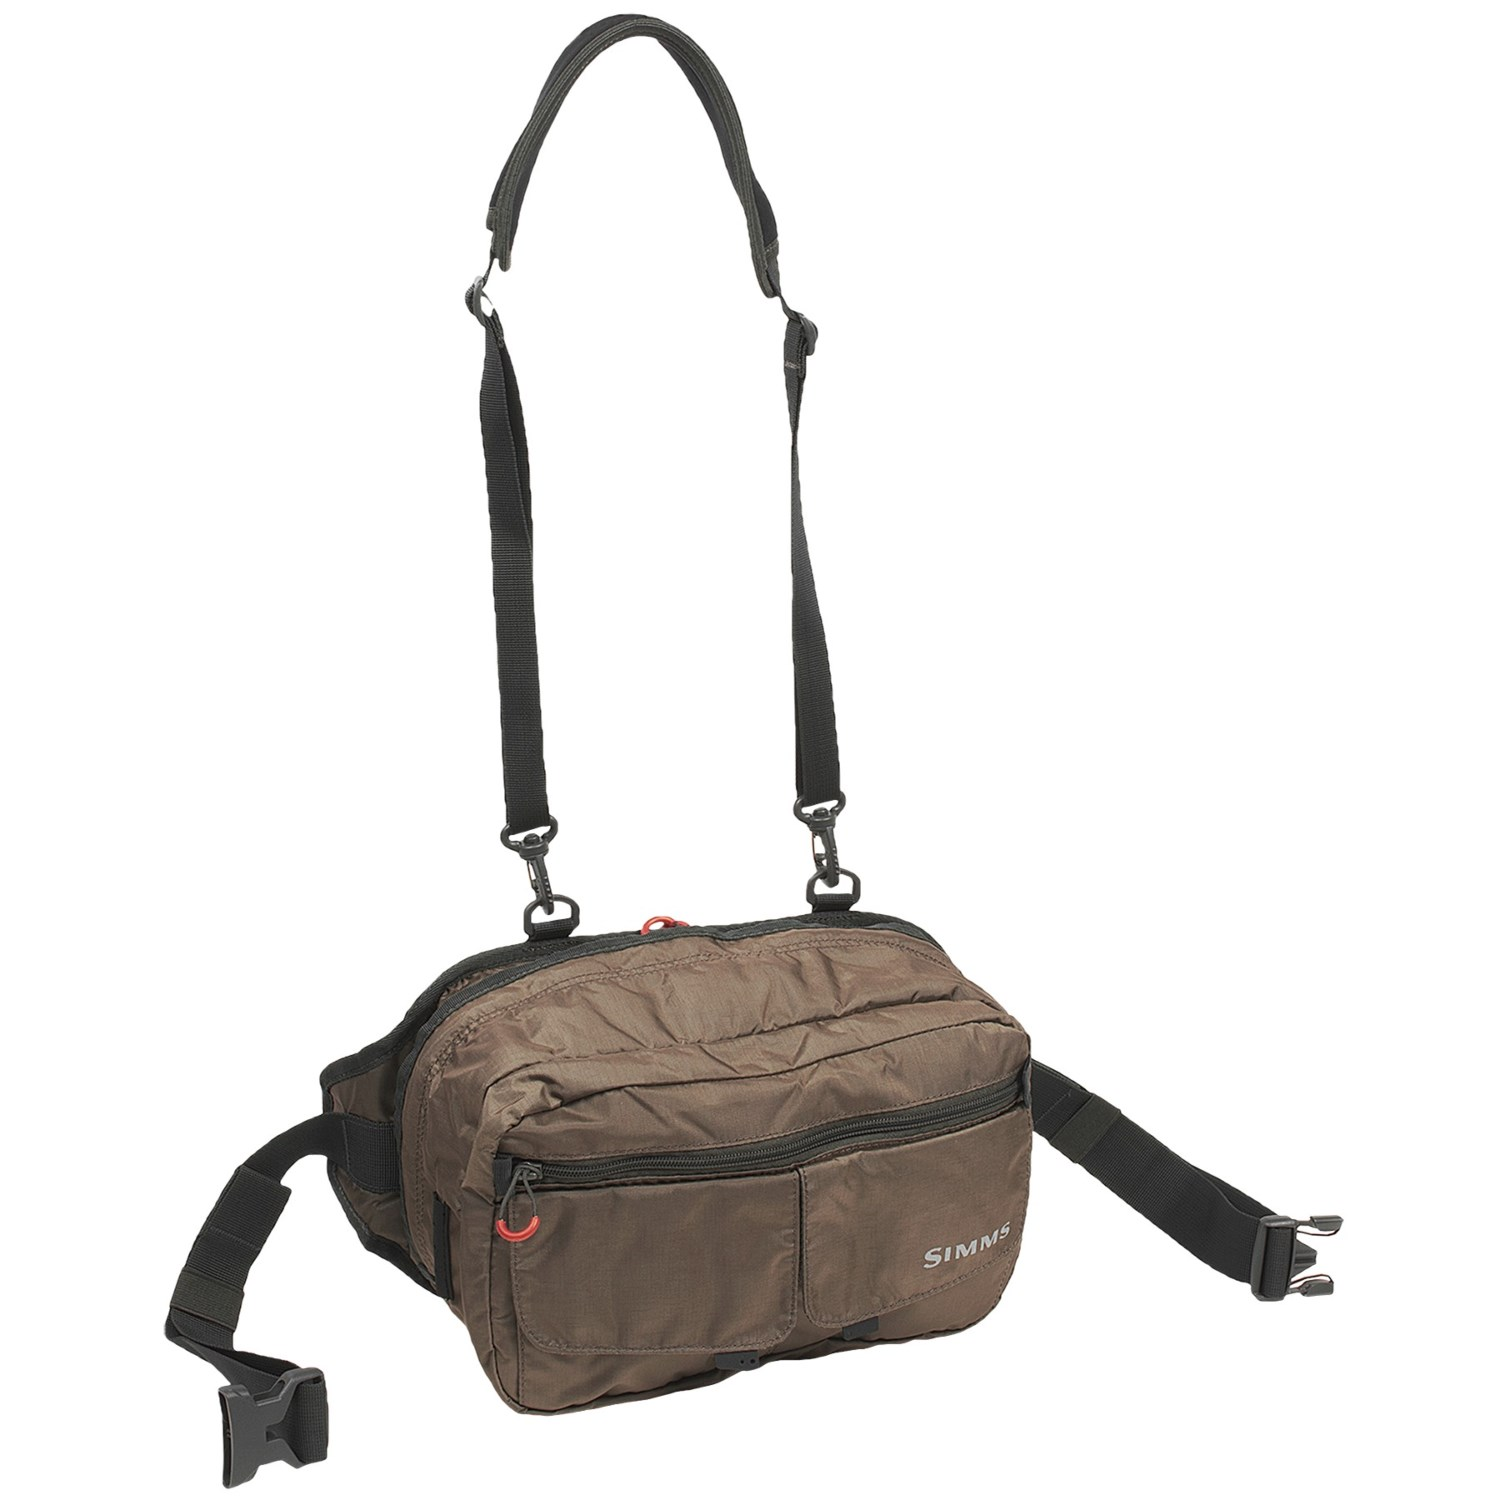 Simms headwaters fishing sling pack save 35 for Fishing sling pack